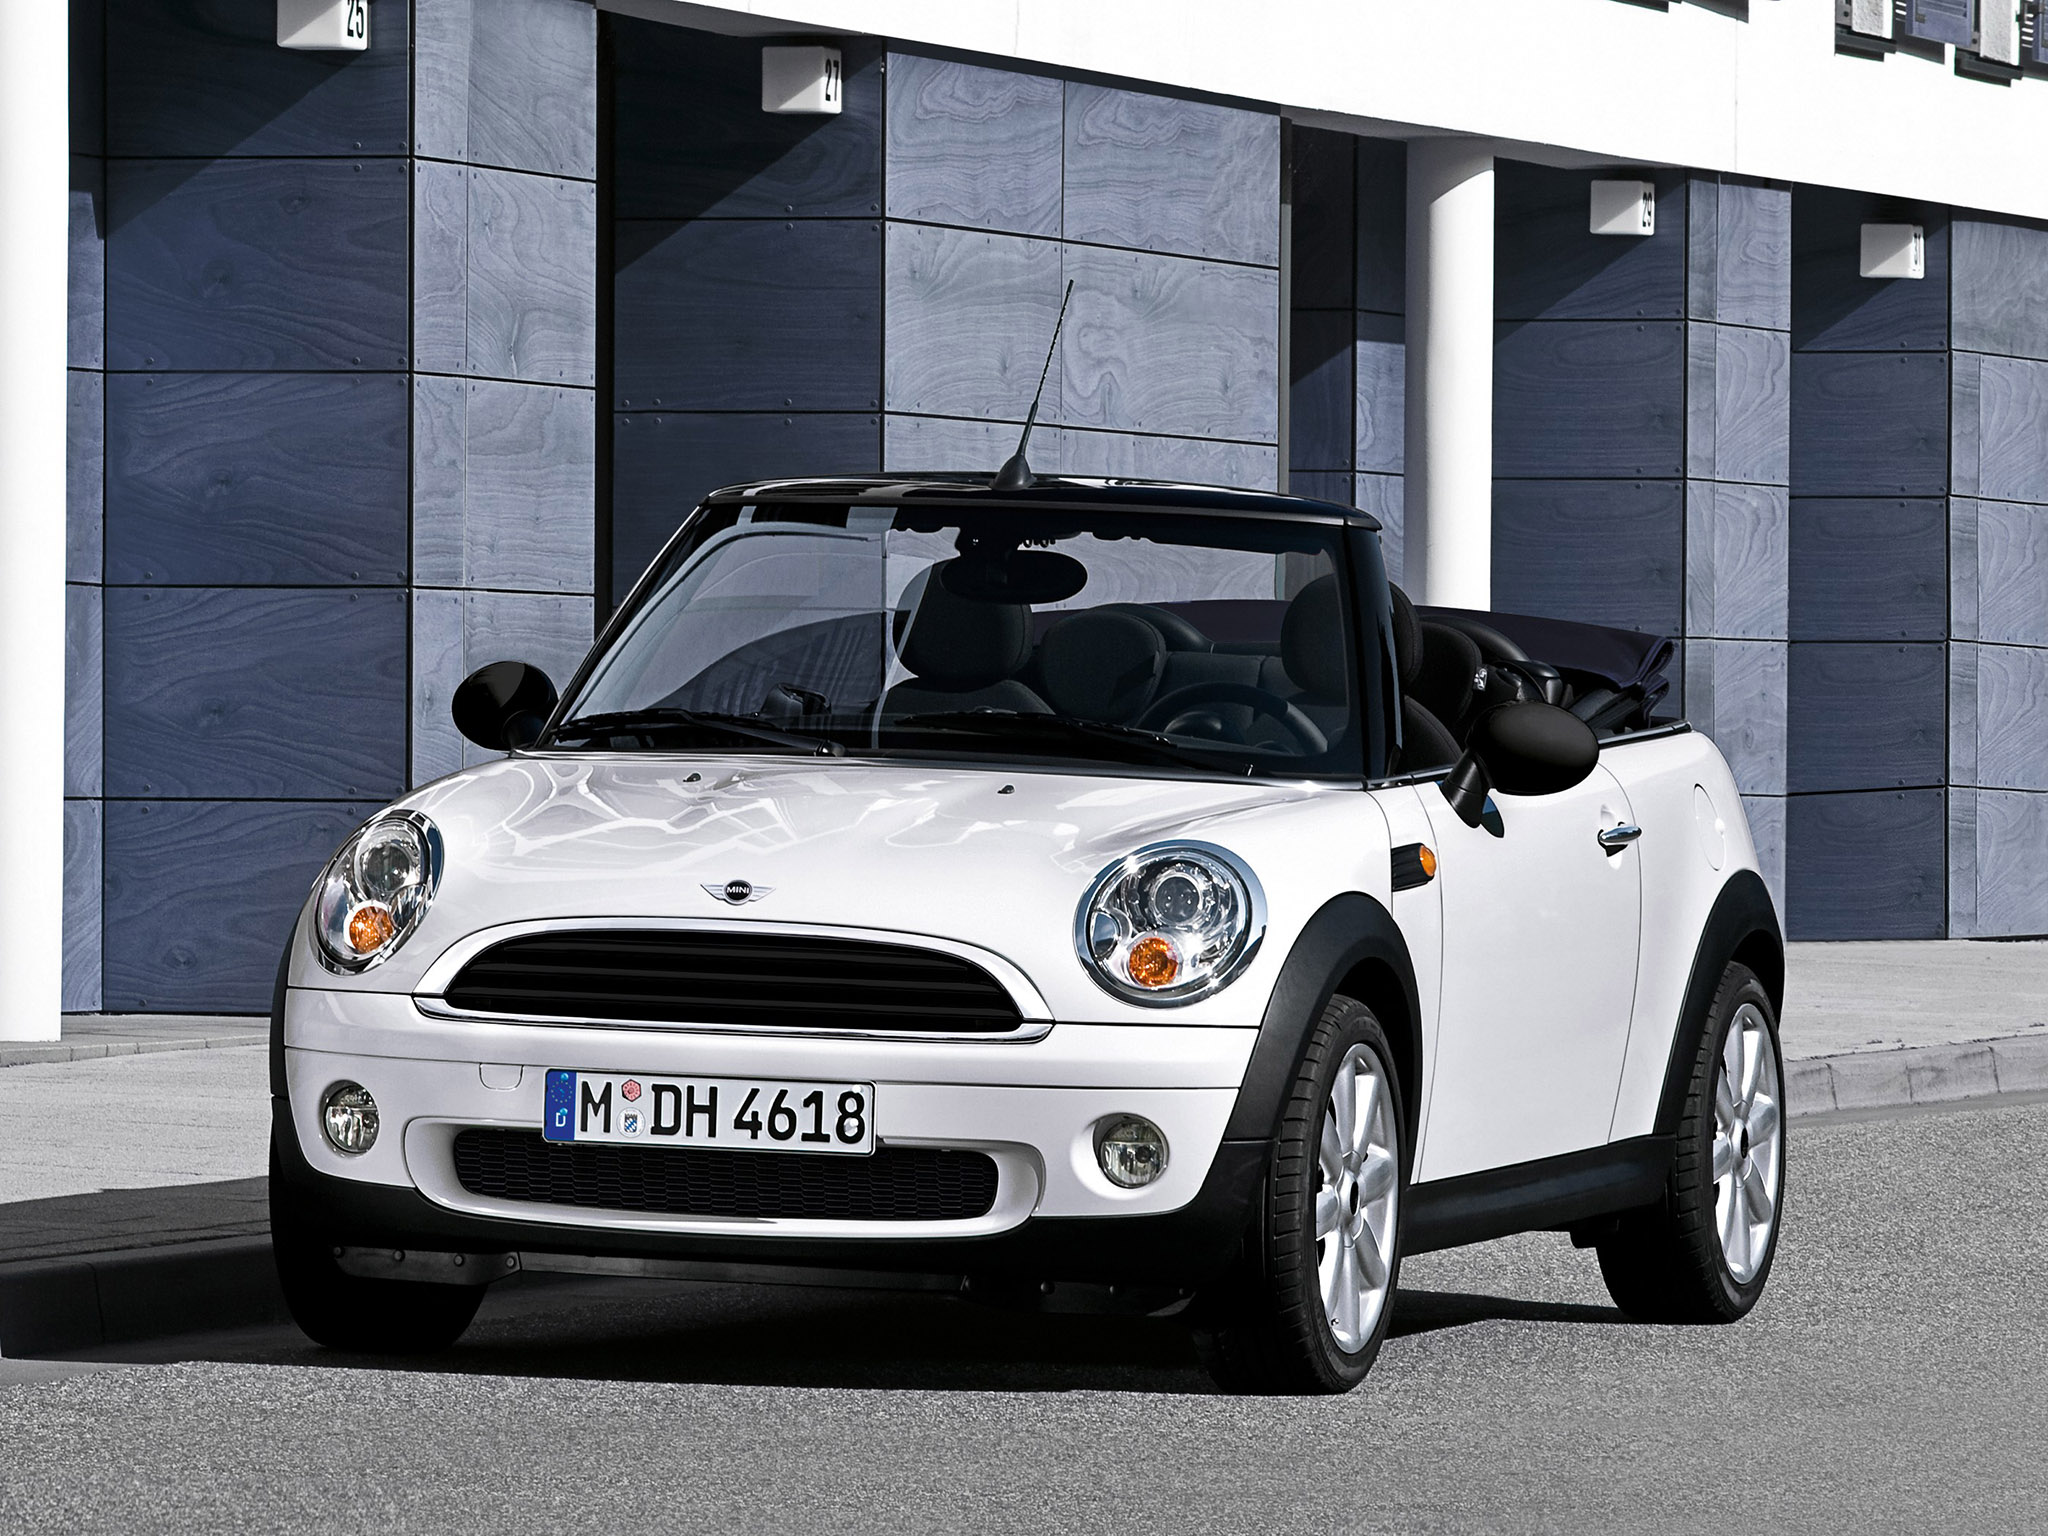 mini cooper one cabrio 2010 mini cooper one cabrio 2010 photo 04 car in pictures car photo. Black Bedroom Furniture Sets. Home Design Ideas